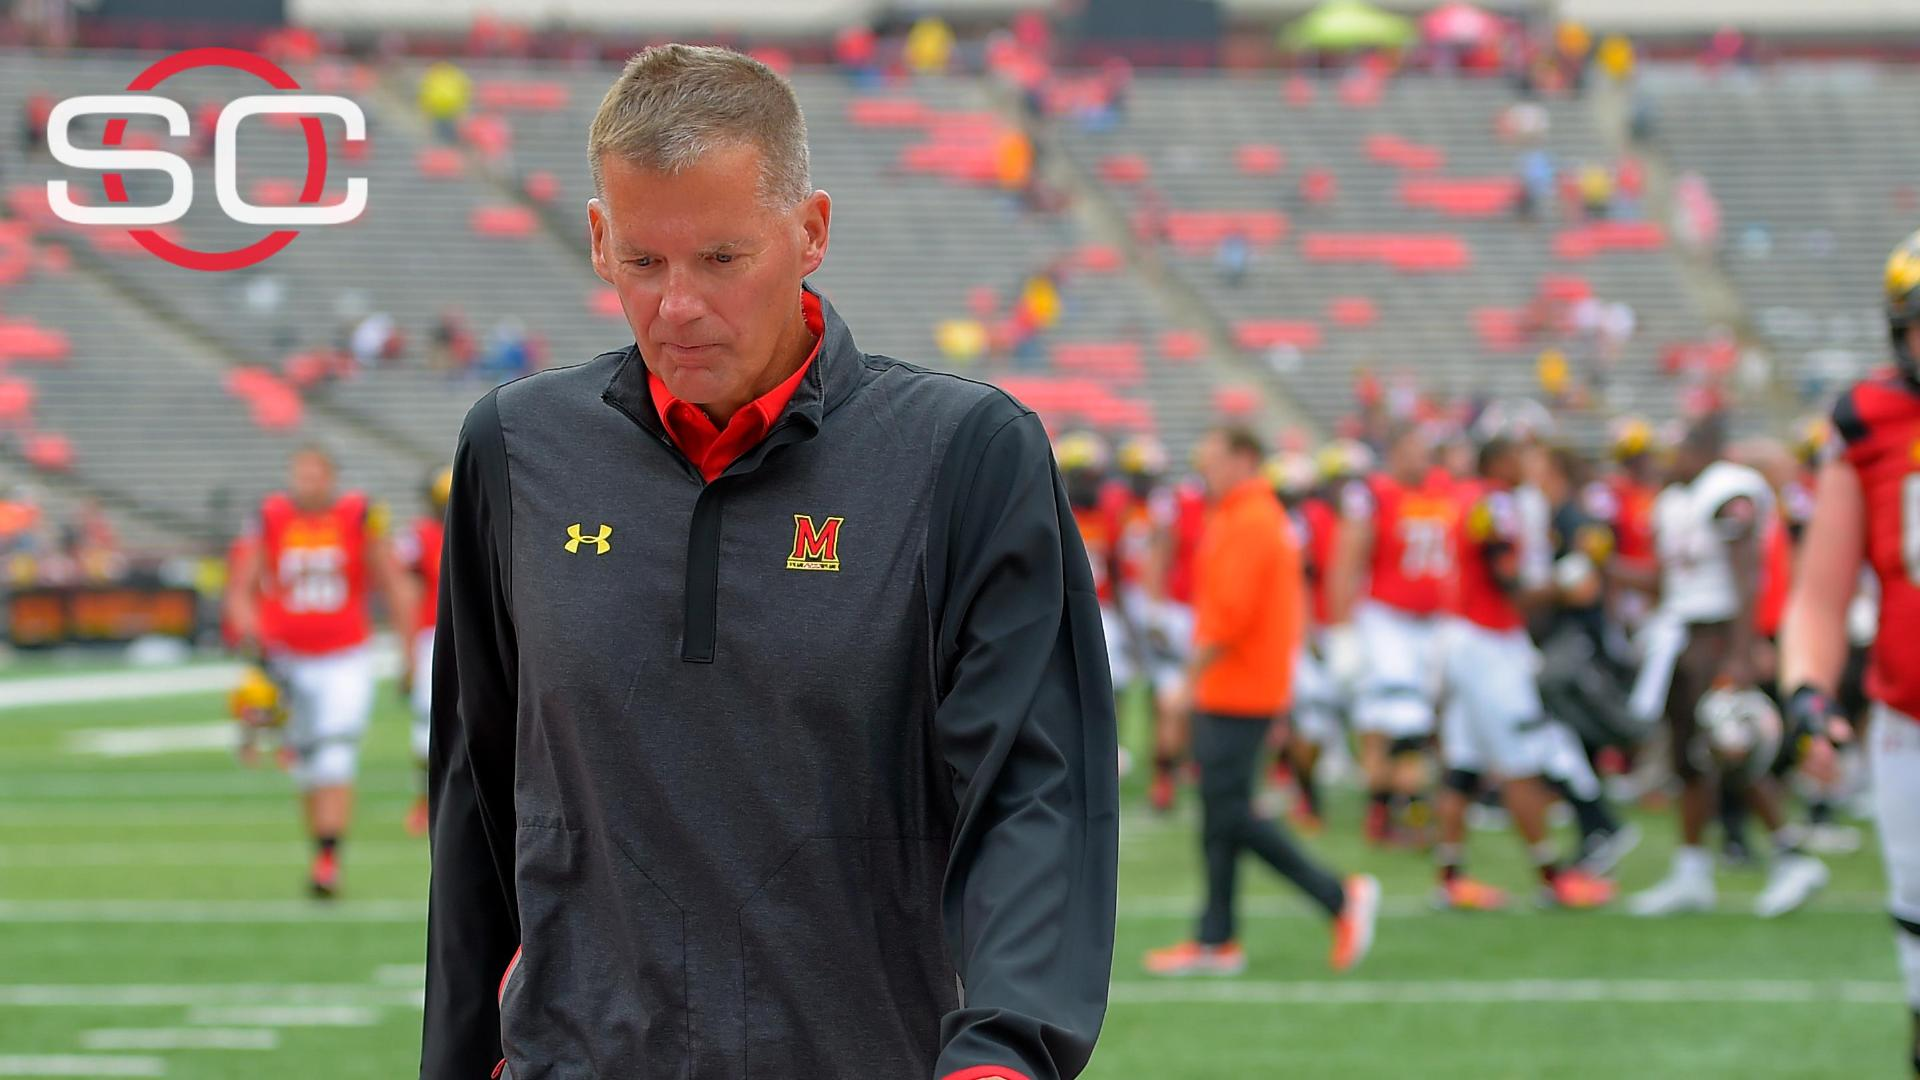 Administration 'not comfortable' continuing with Edsall